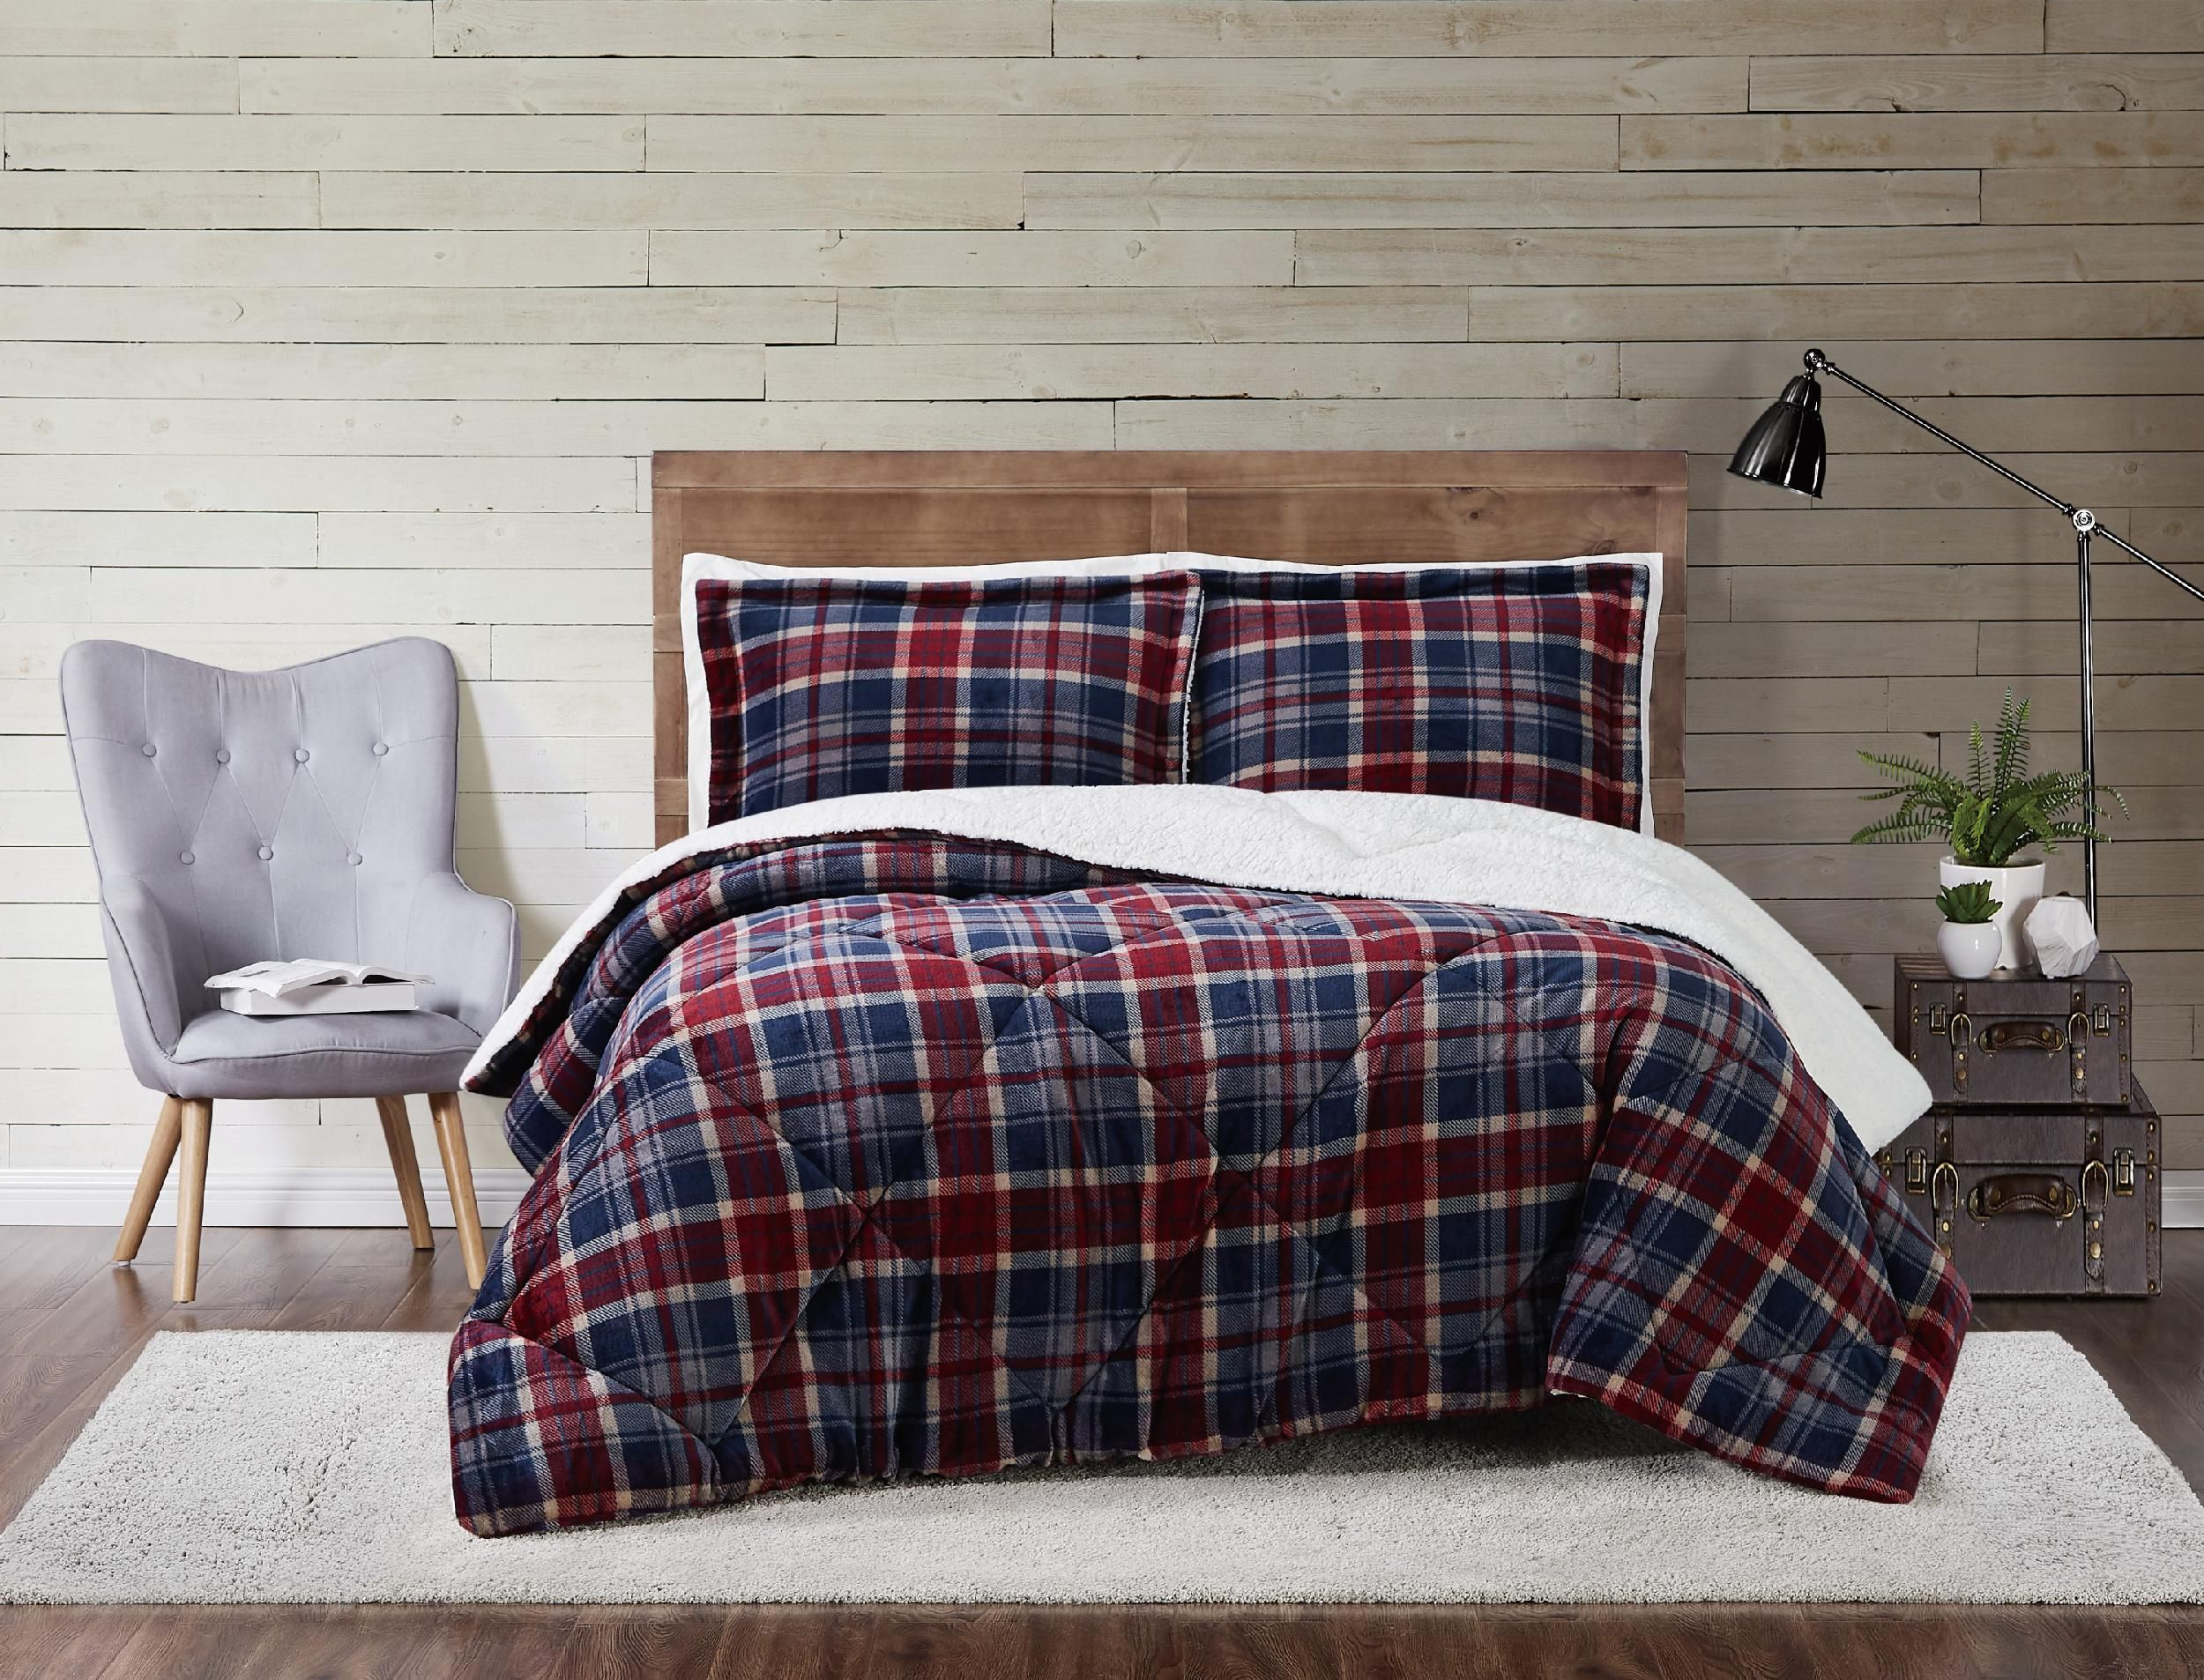 Pem America Plaid 2-Piece Twin XL Comforter Set